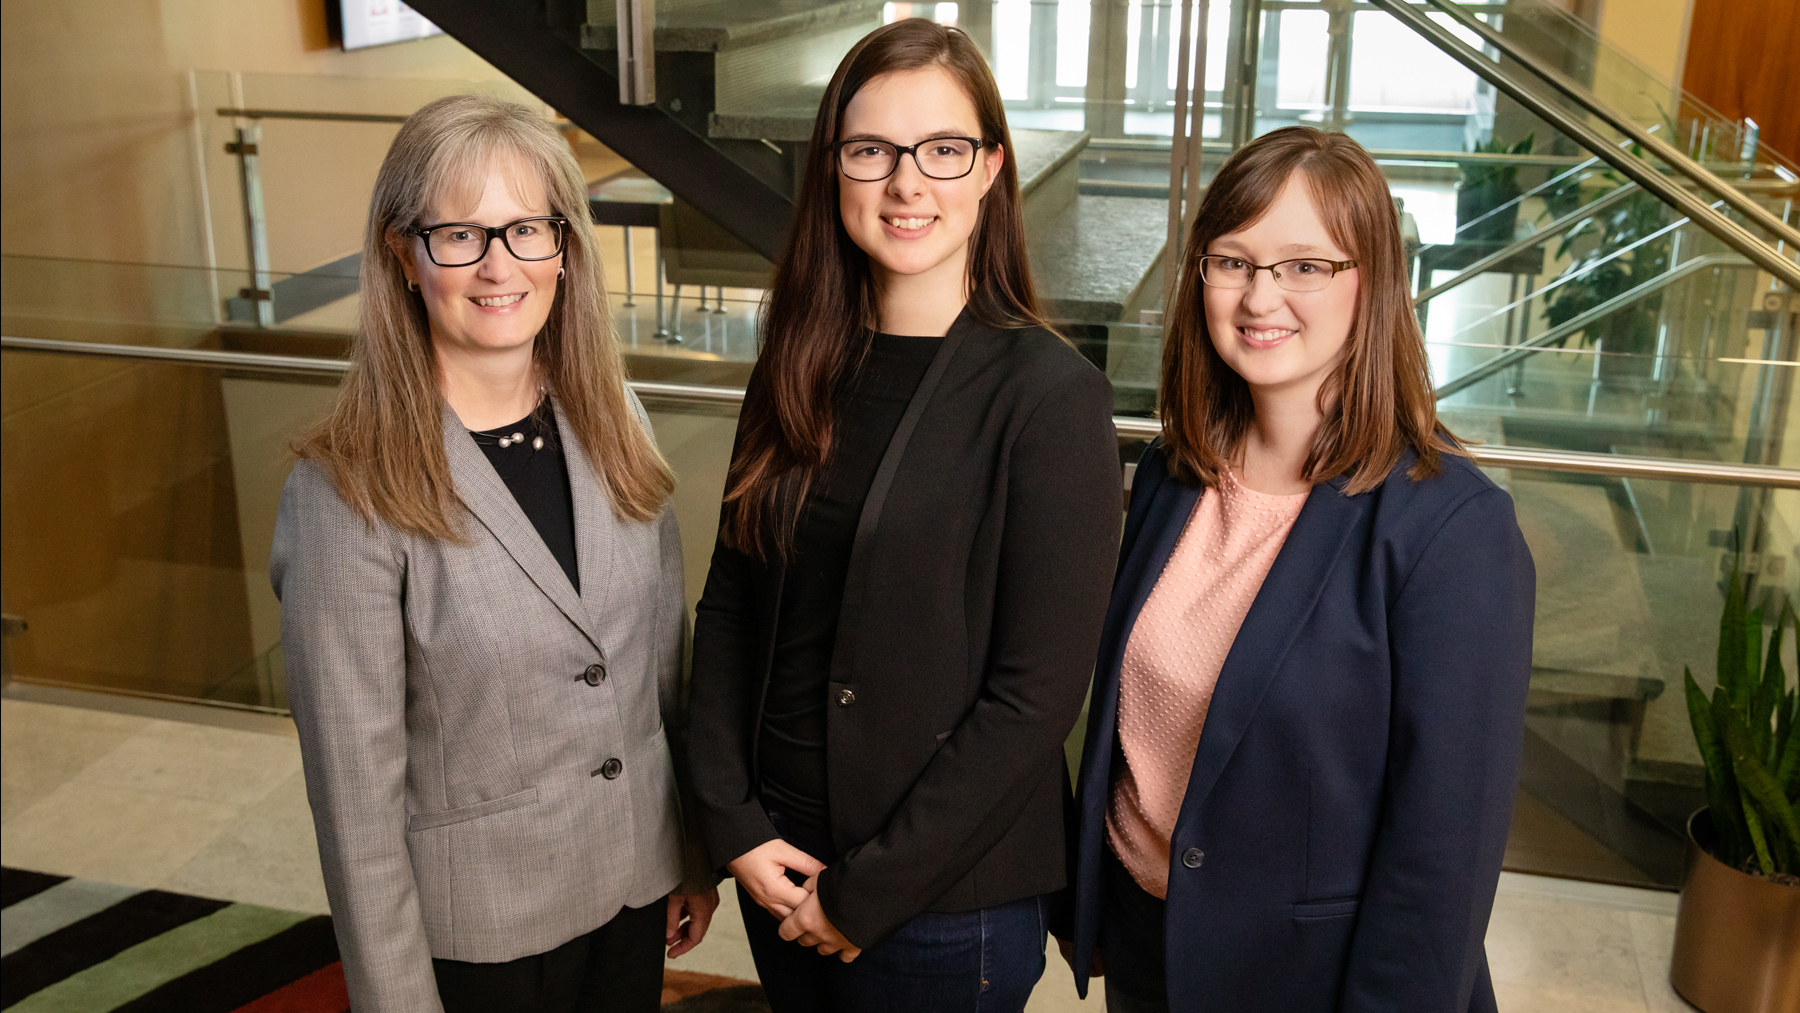 Sharon M. Nickols-Richardson, a professor of food science and human nutrition and director of Illinois Extension and Outreach; Cassandra J. Nikolaus, a graduate student in human nutrition and the lead author of the study; and Brenna Ellison, a professor of agricultural and consumer economics.